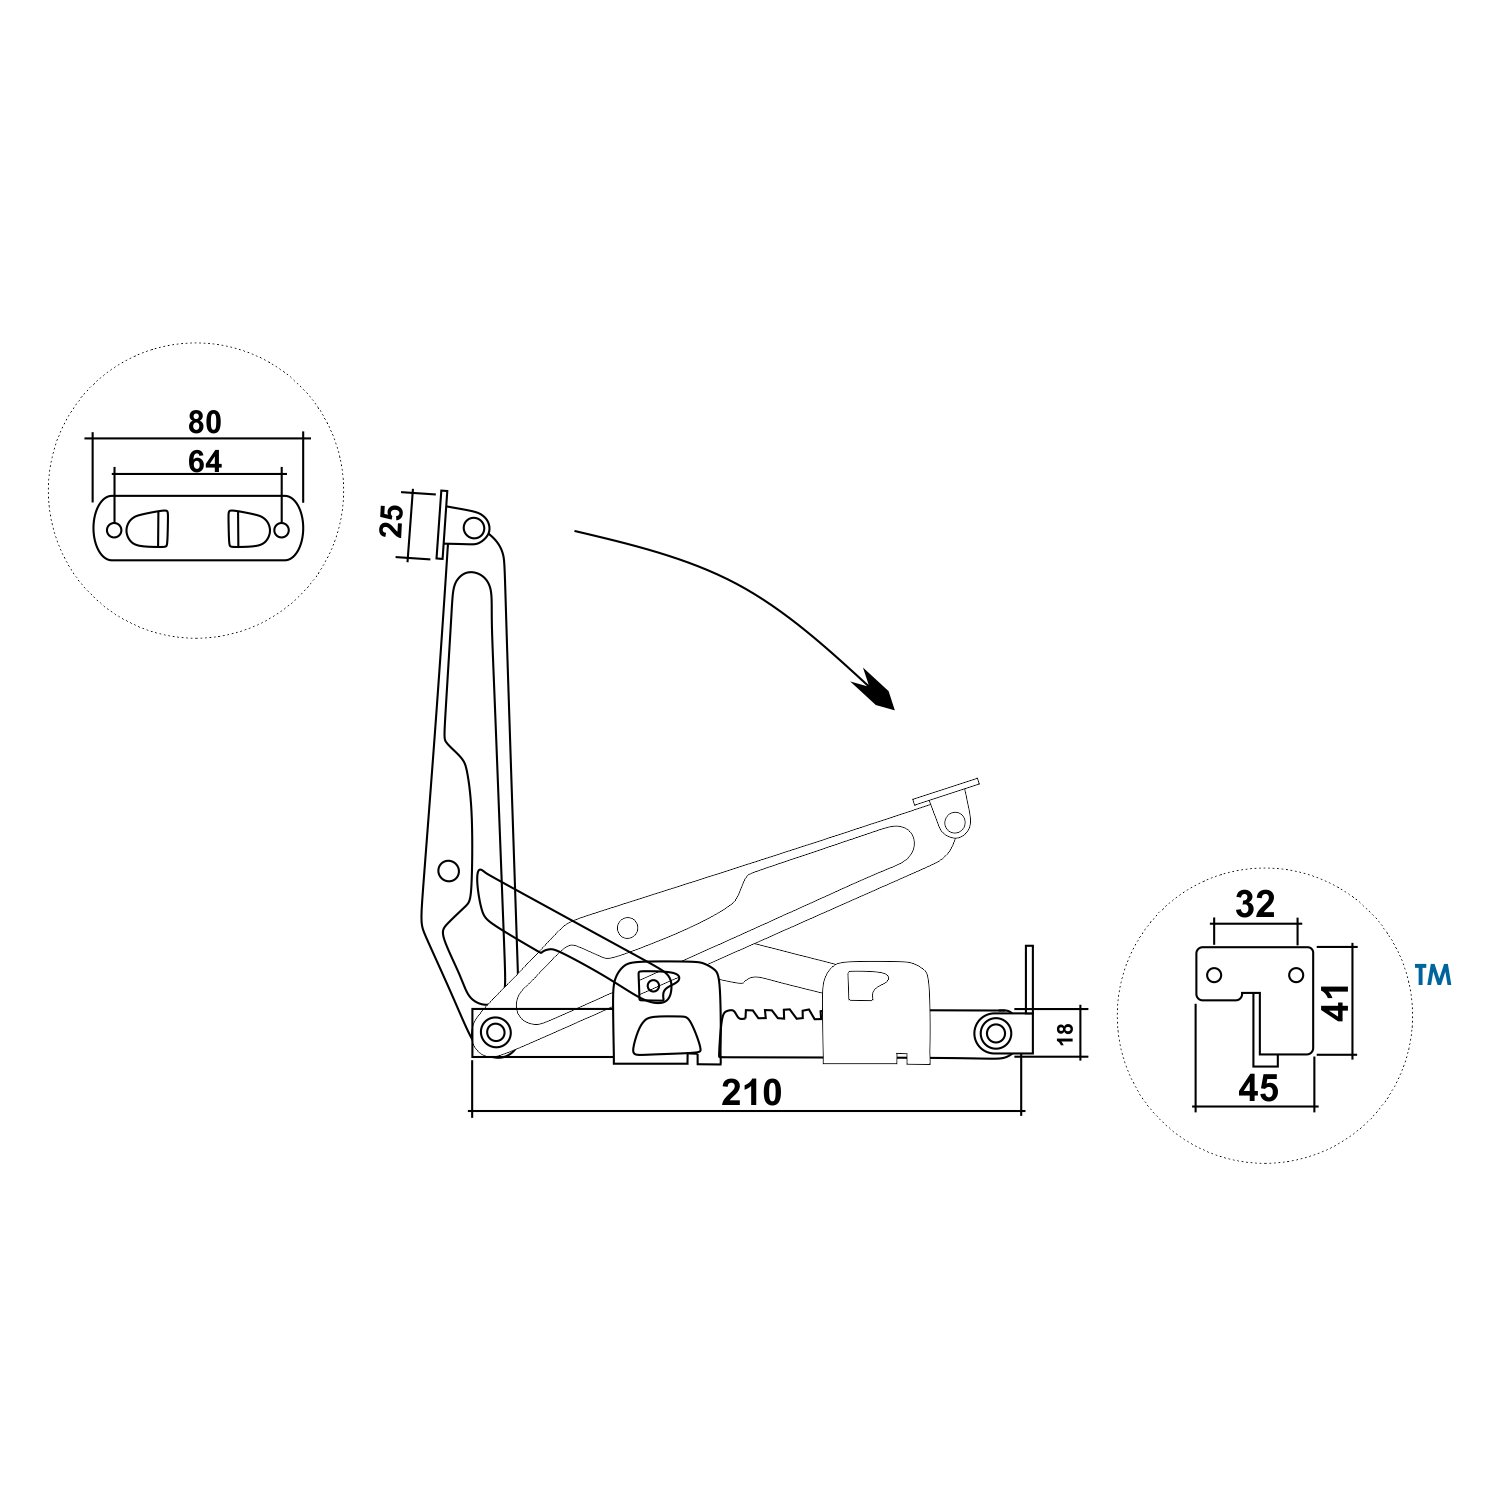 61DHDcTa76L._SL1500_ rok hardware ratchet headrest fitting for beds, desk lids Basic Electrical Wiring Diagrams at bakdesigns.co